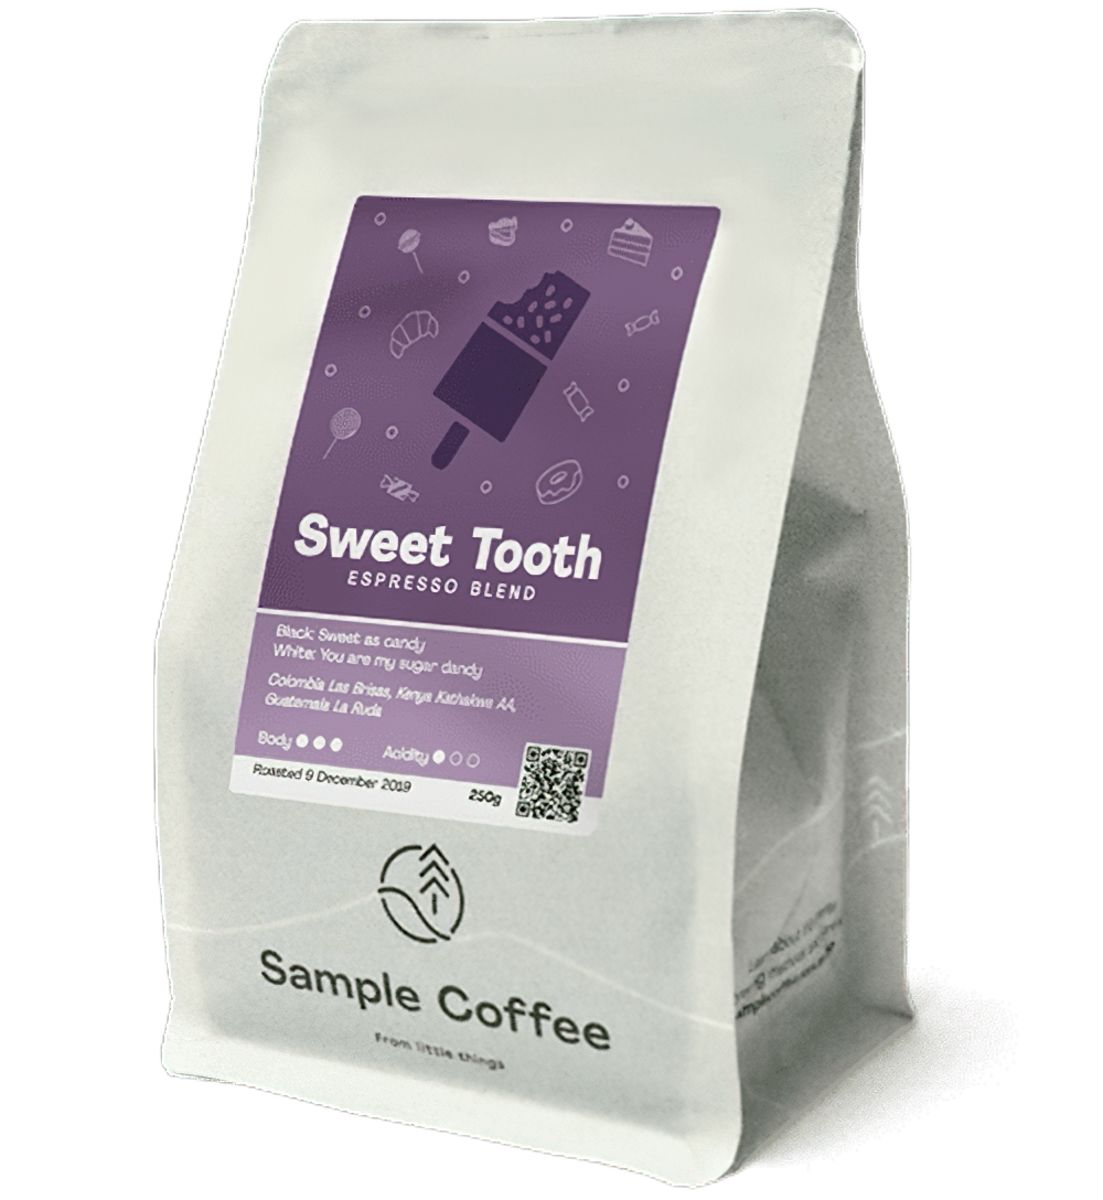 Sample Coffee - Sweet Tooth Espresso Blend